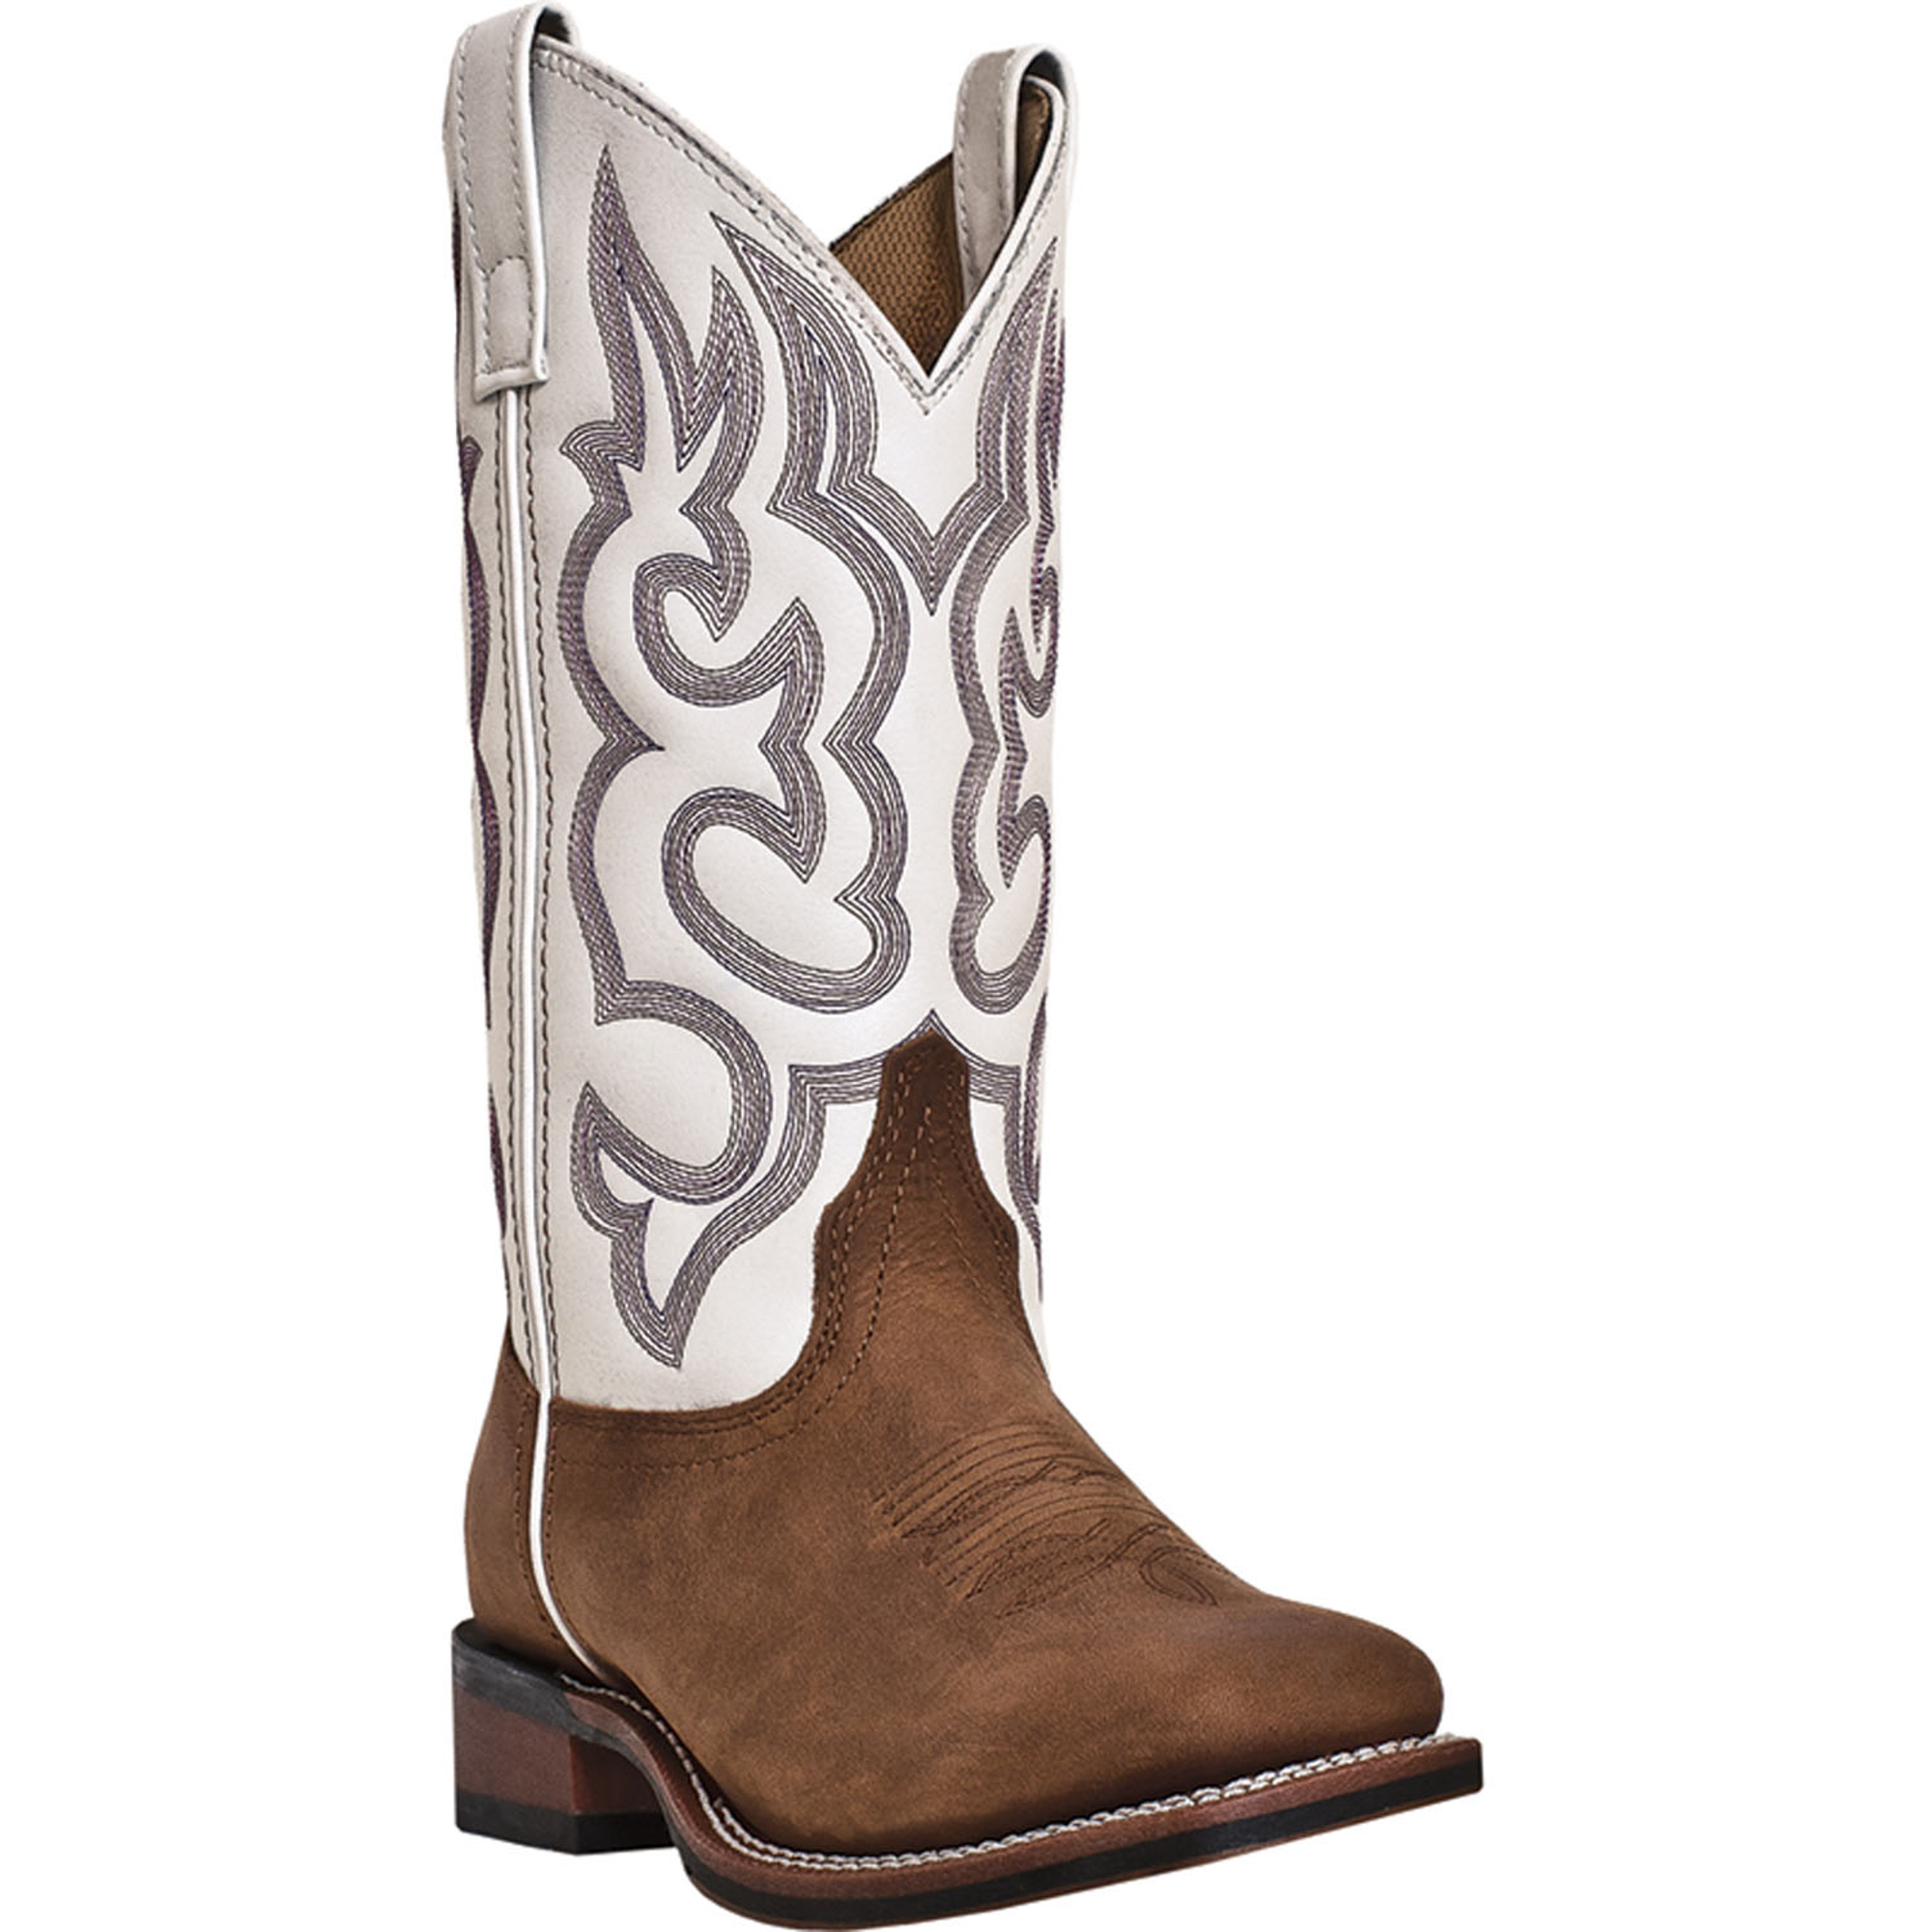 Amazing  Boots Gt Ariat Womens Round Up Square Toe Cowboy Boots  Powder Brown